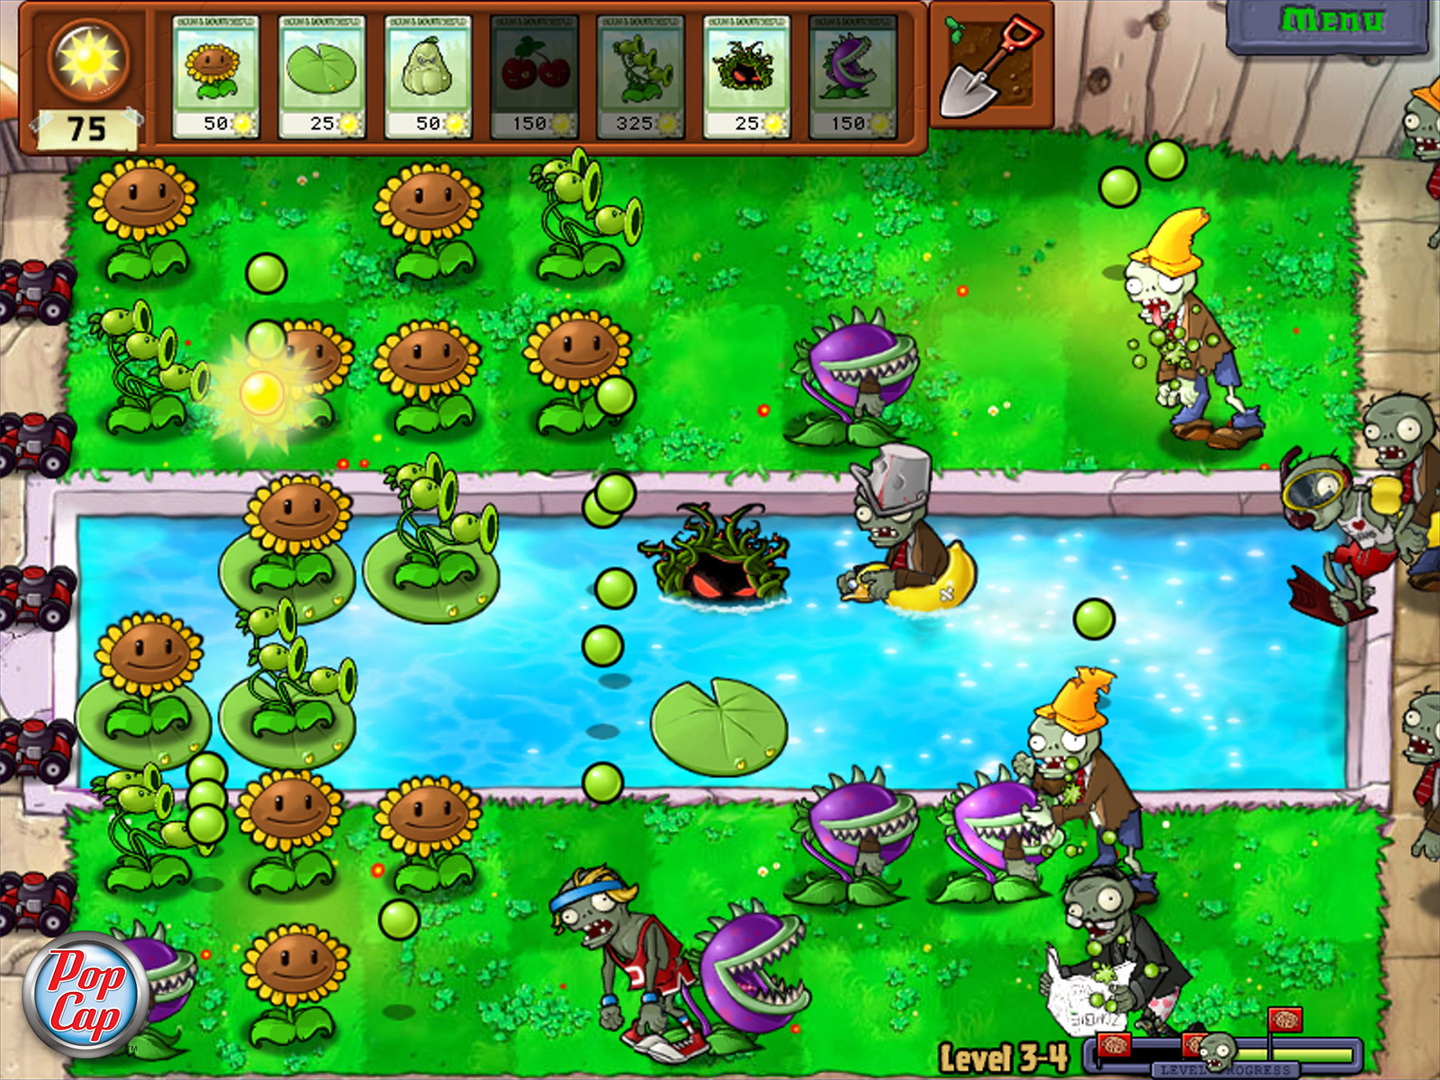 Zen Garten Plants Vs Zombies Versão De Plants Vs Zombies Para Ios Ganhará Grande